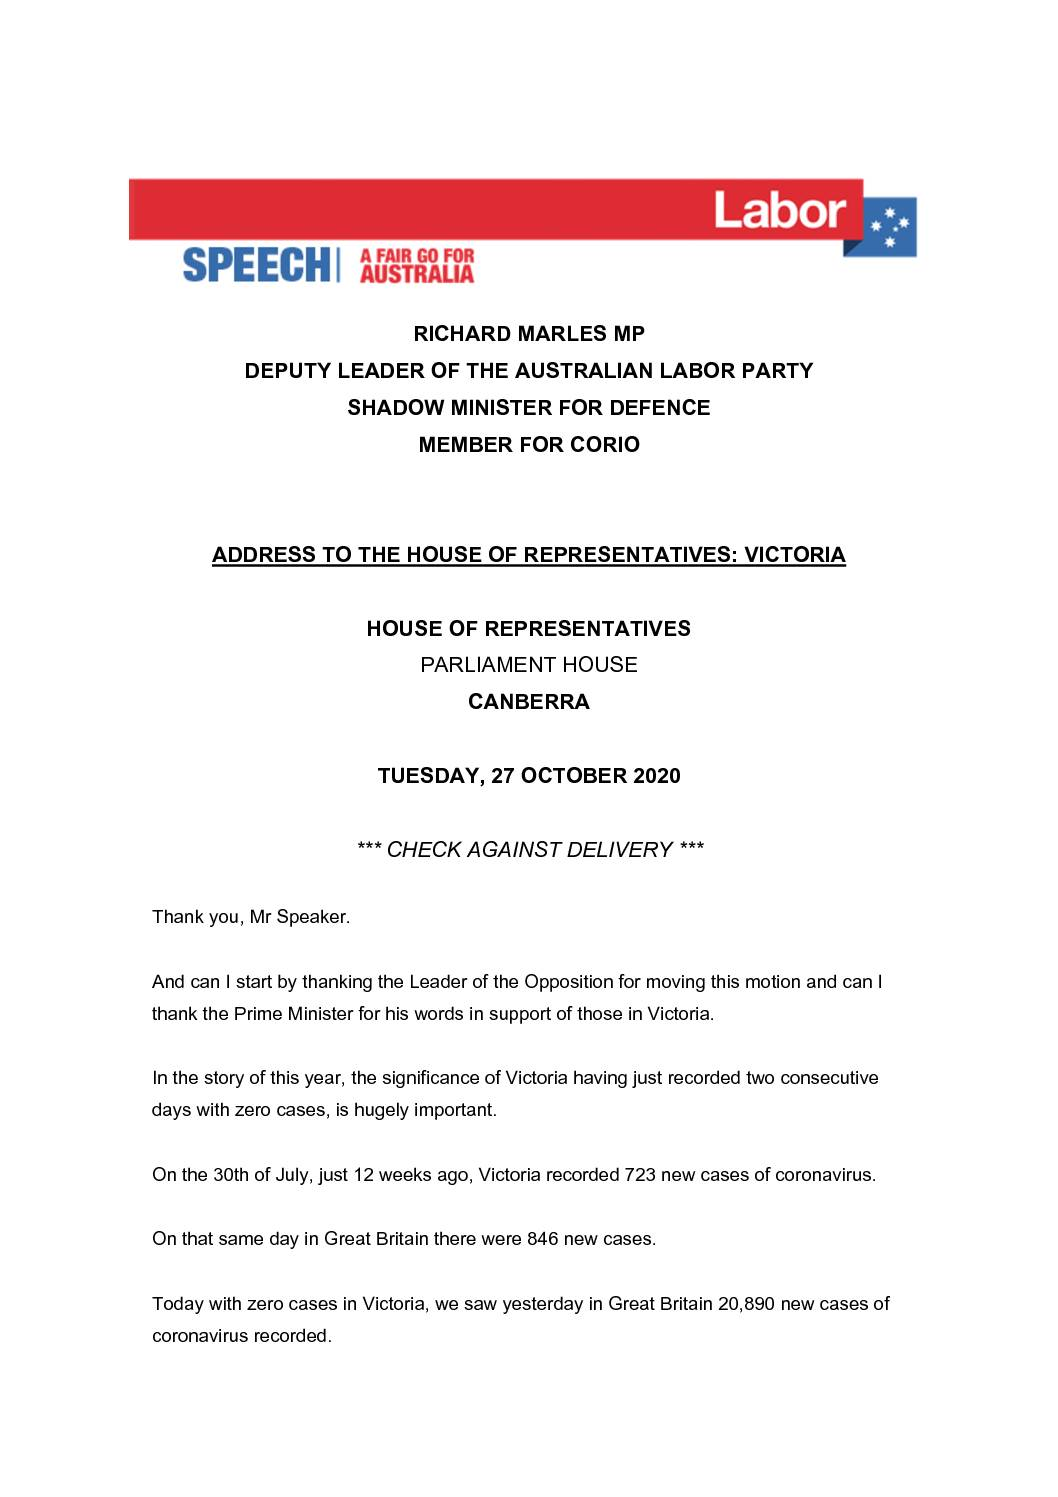 20.10.27-ADDRESS-TO-THE-HOUSE-OF-REPRESENTATIVES_VICTORIA